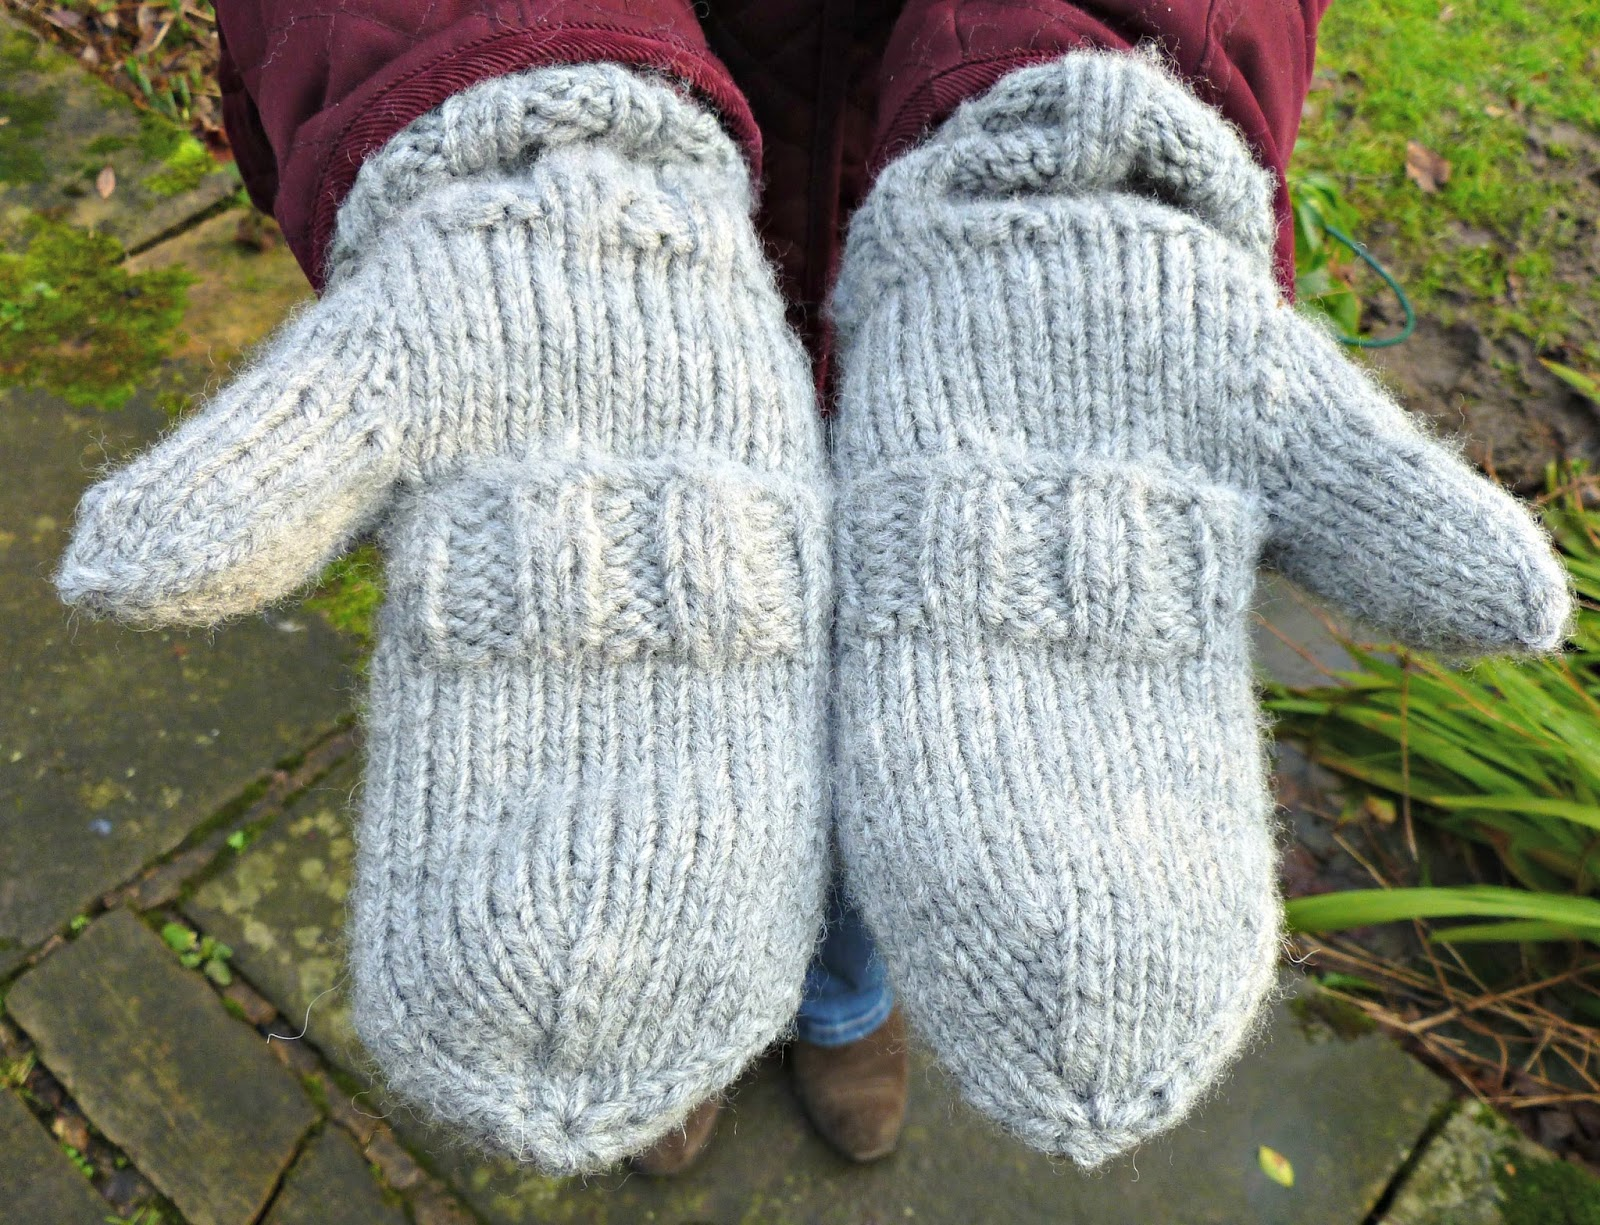 Knitting Pattern For Mittens With Flaps : Winwick Mum: Split Mittens - free pattern and tutorial